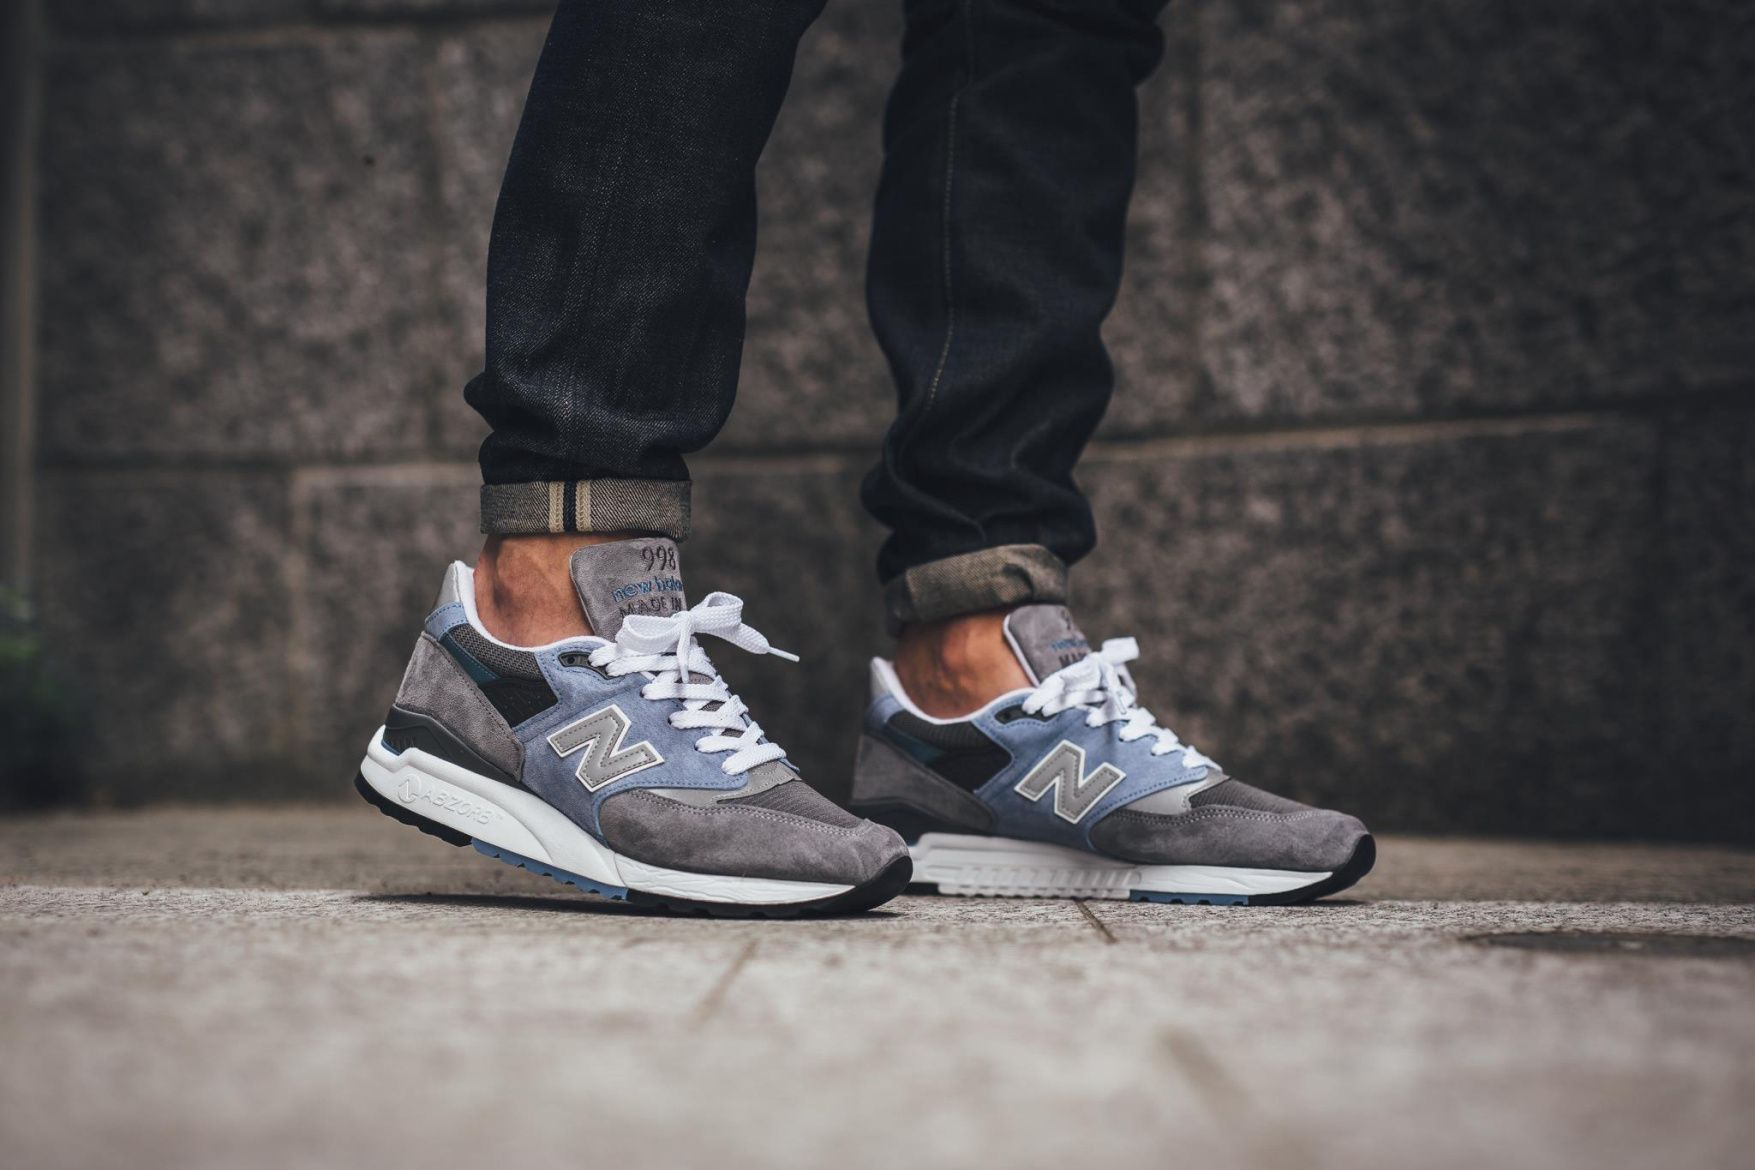 44c0af03ae128 New Balance Drops the M998CPLO in a Clean Gray Colorway | shoess ...